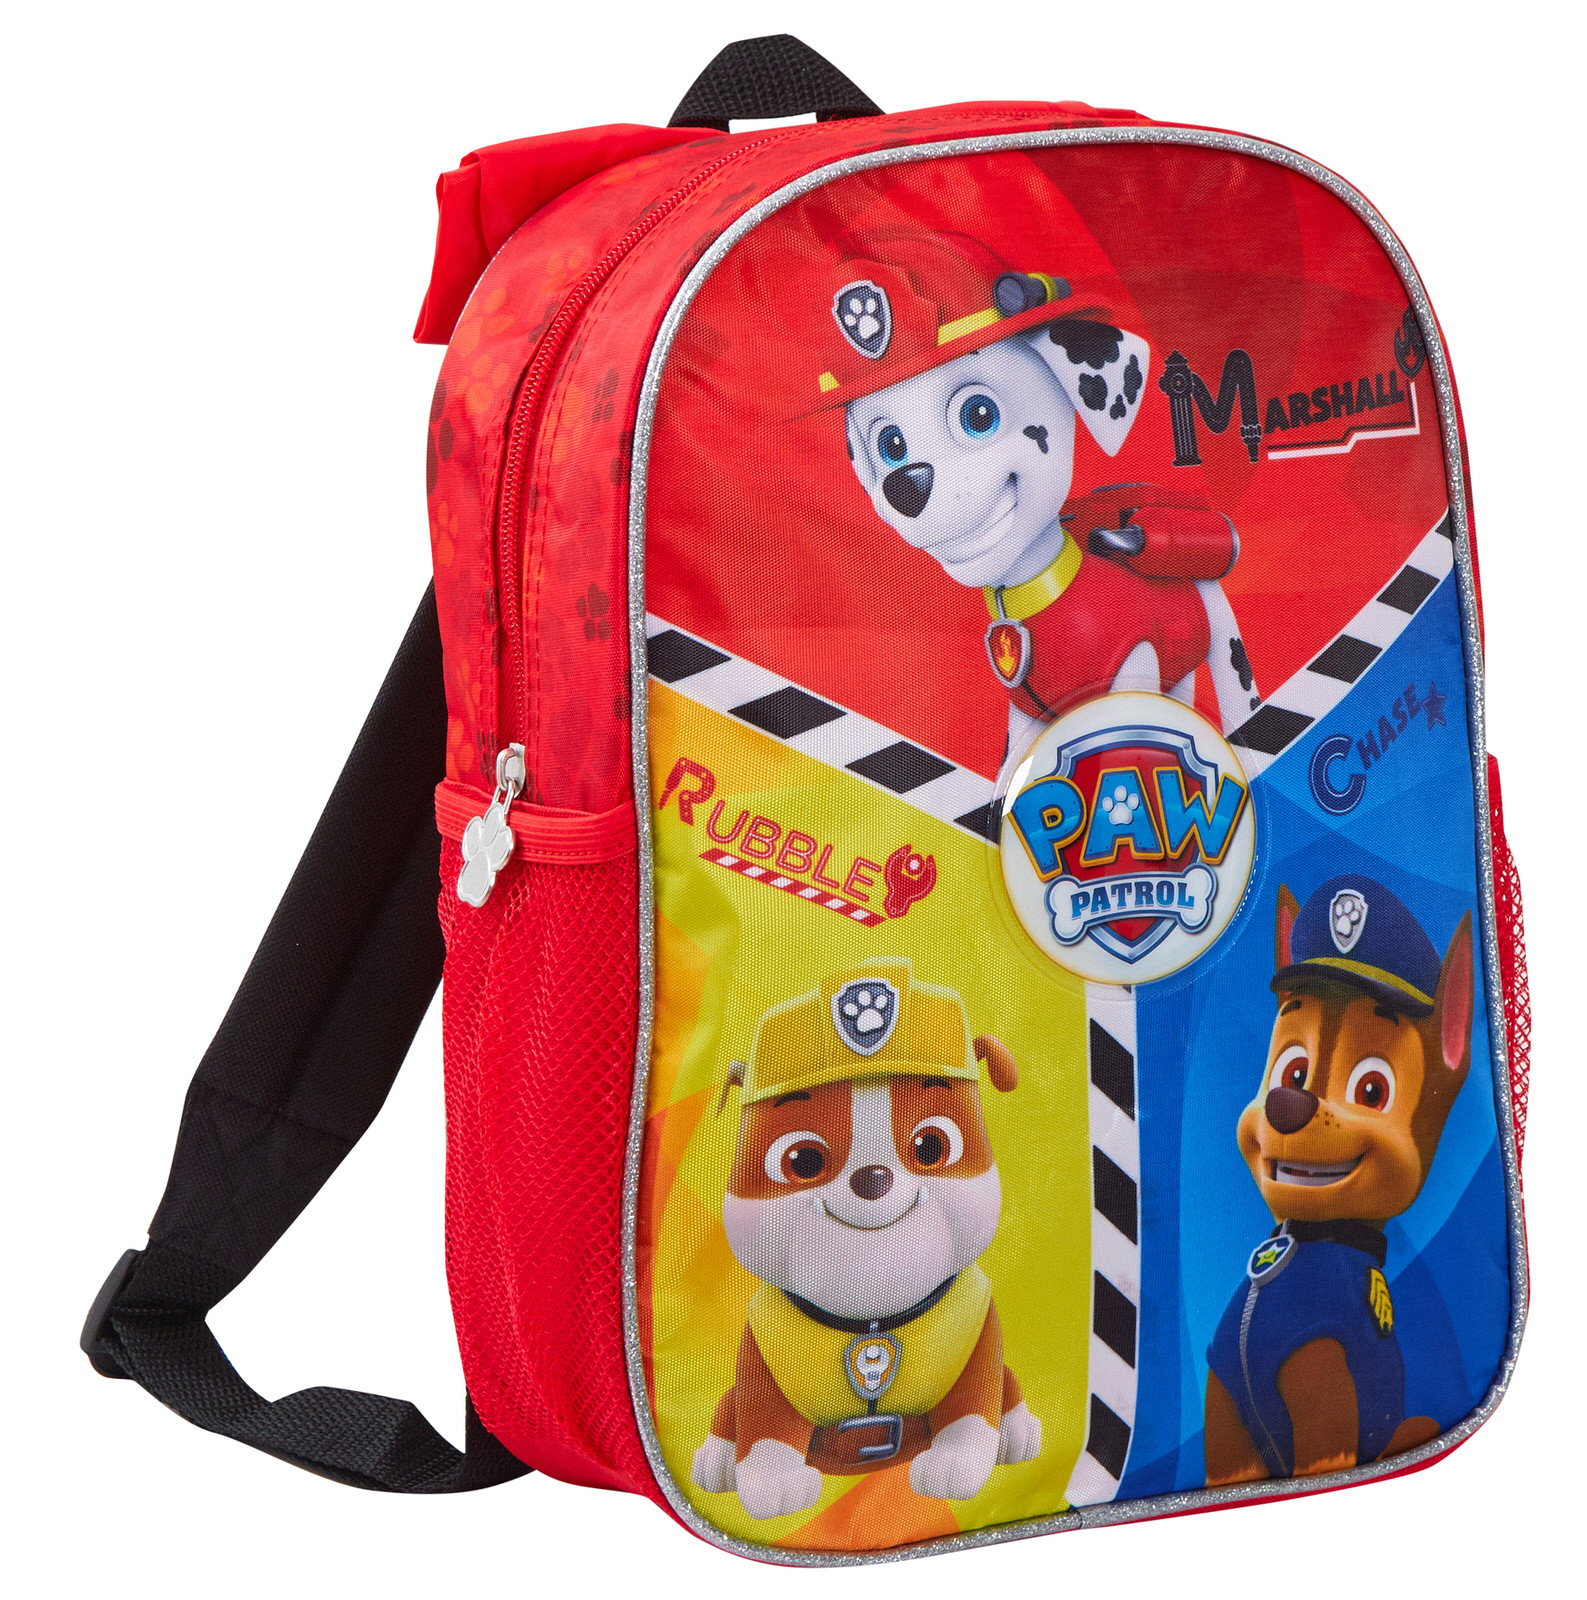 Paw Patrol Boys School Book bag Backpack Kids Marshall Chase Rubble Toy Gift 14/""